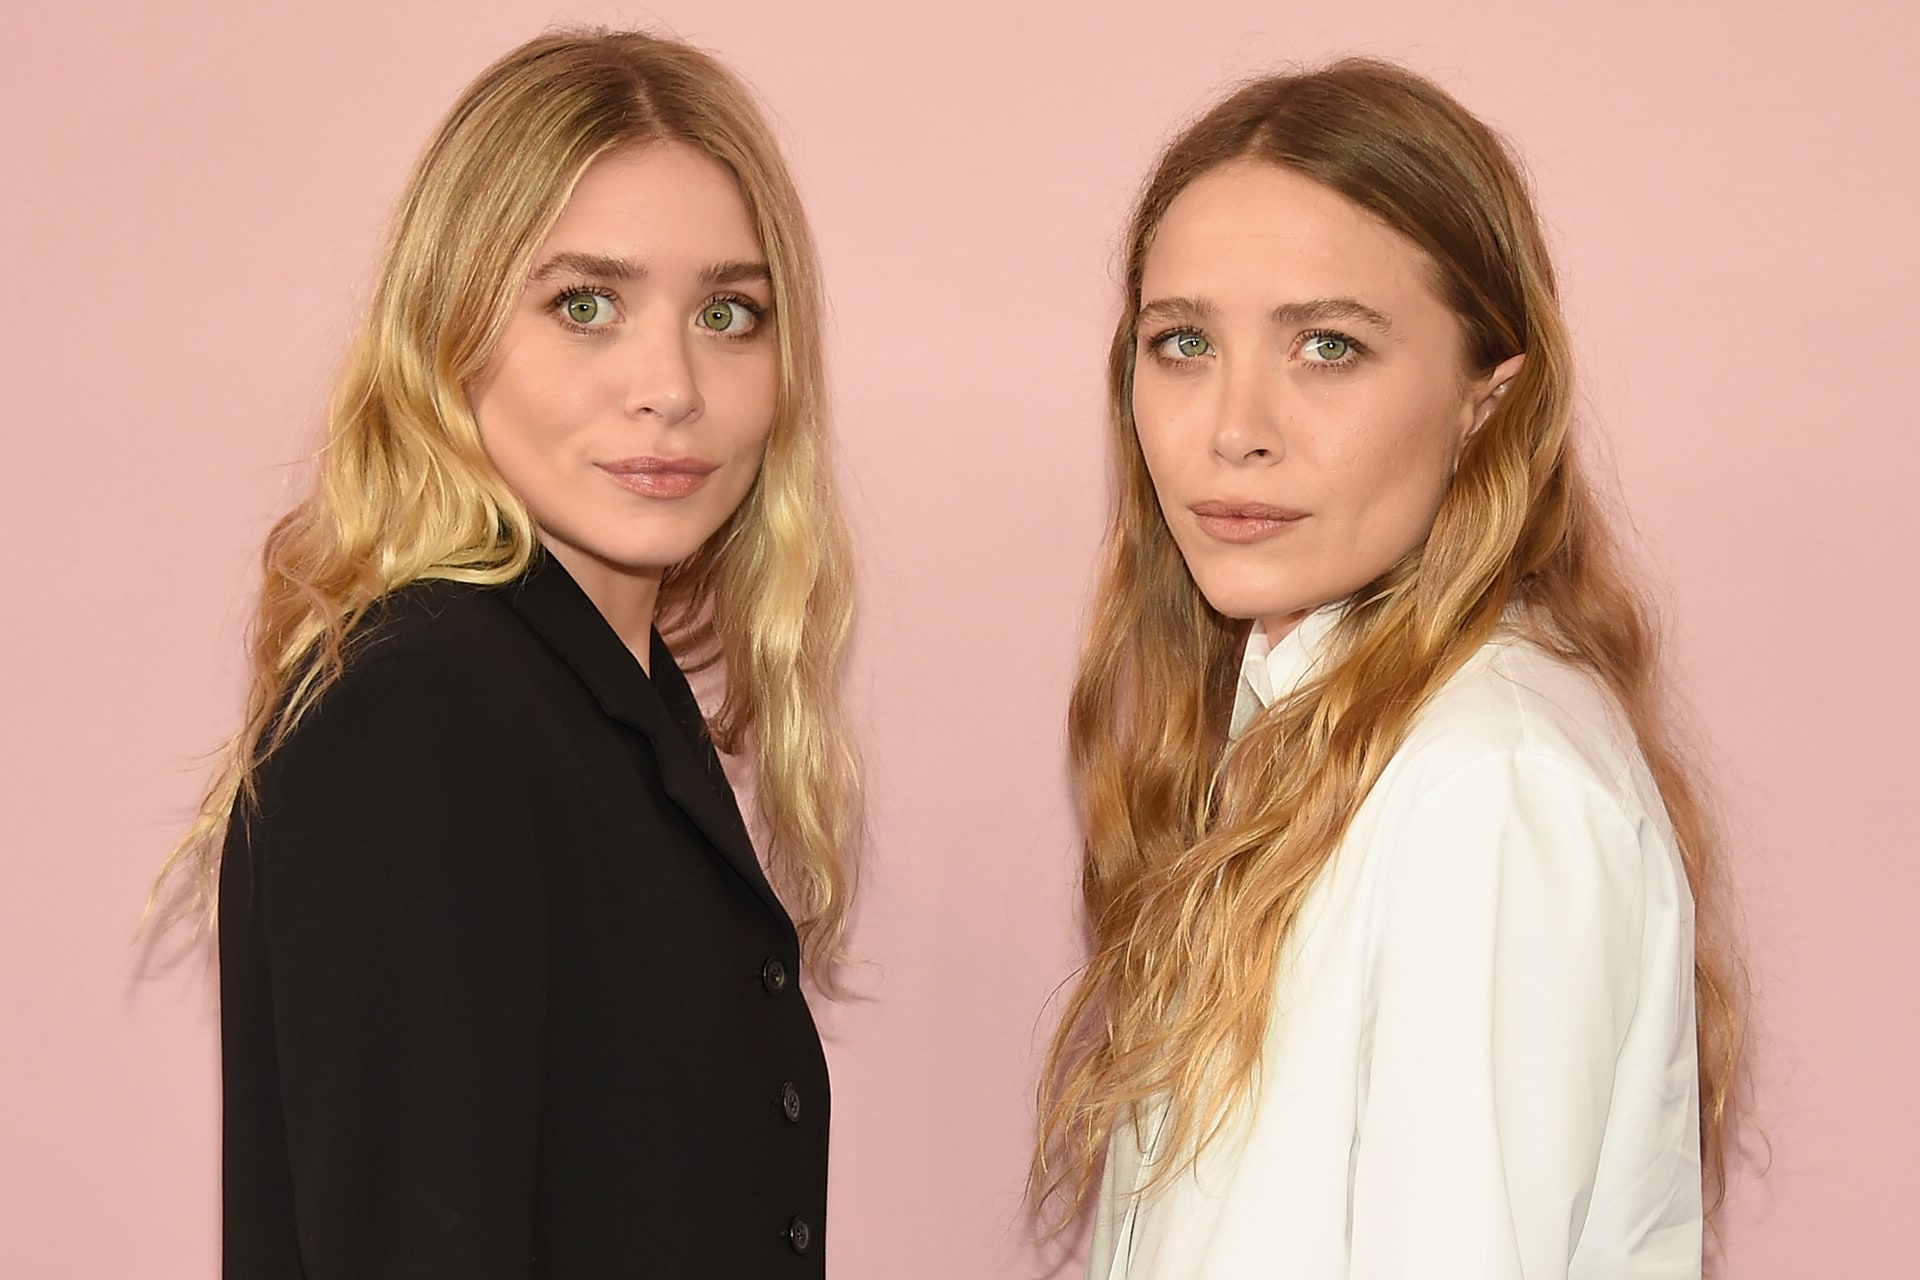 Mary-Kate and Ashley Olsen's brand Elizabeth and James will be sold exclusively at Kohl's